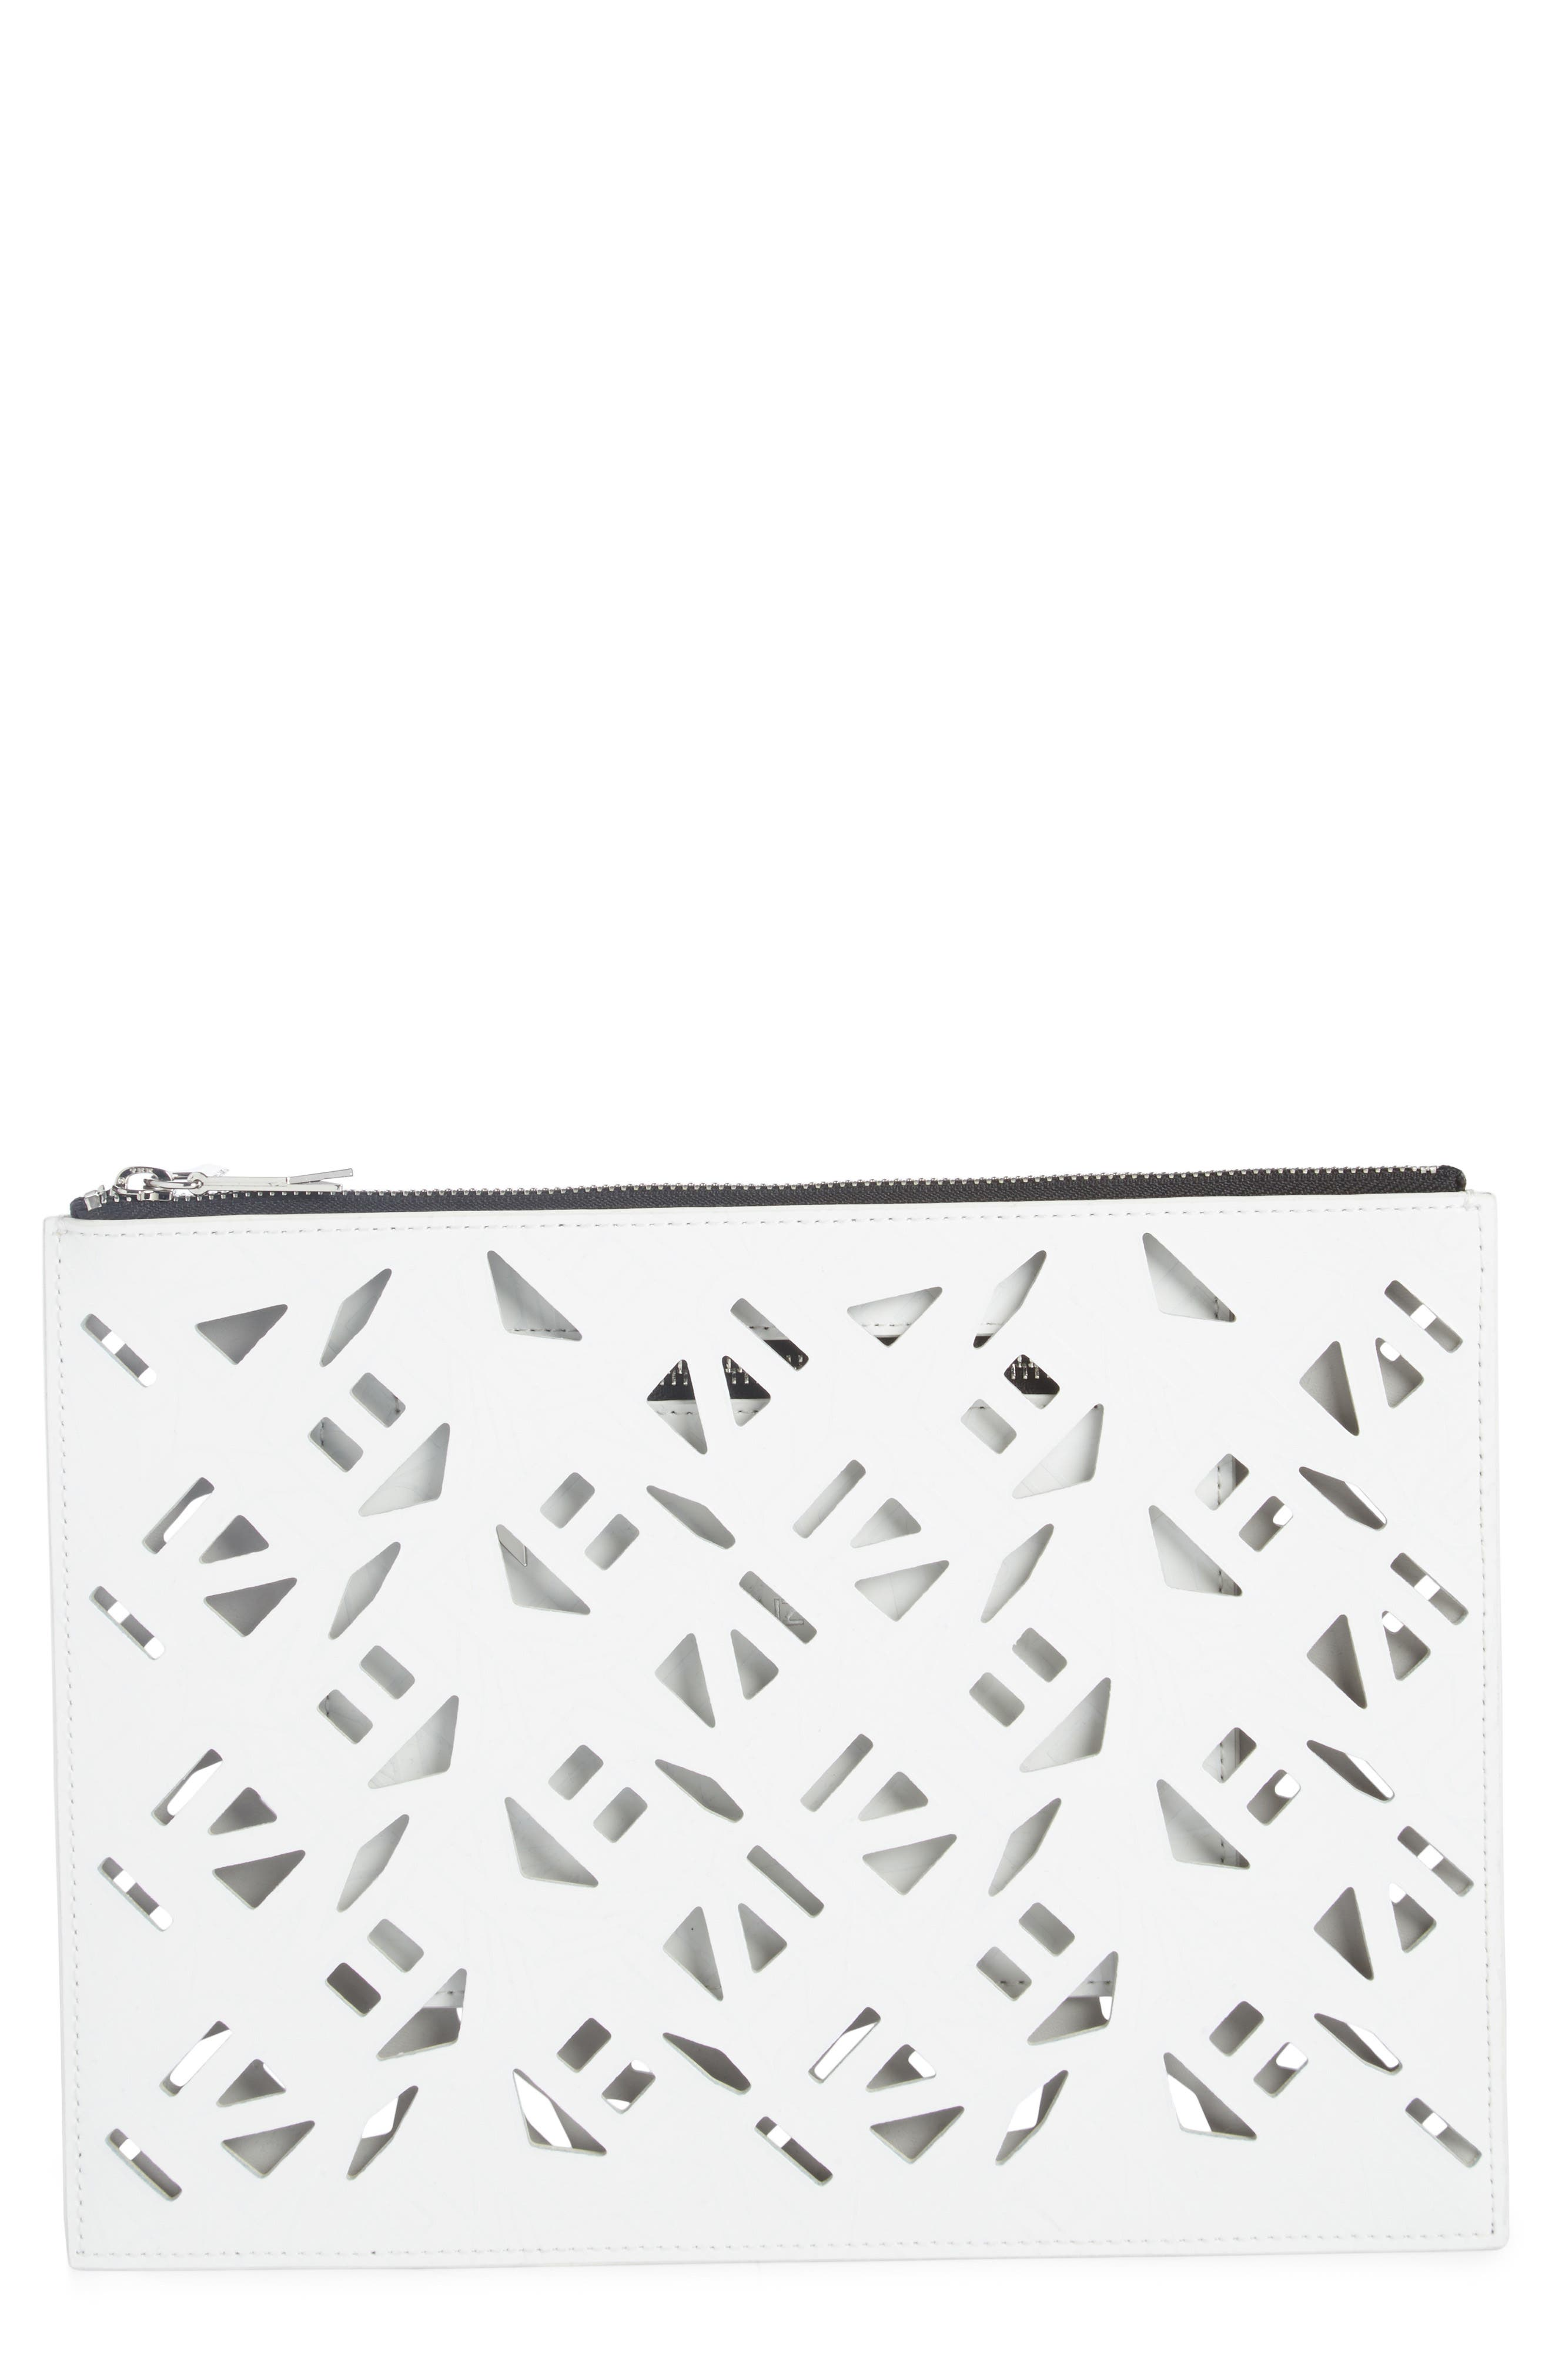 Art Gummy Perforated Leather A4 Pouch,                         Main,                         color,